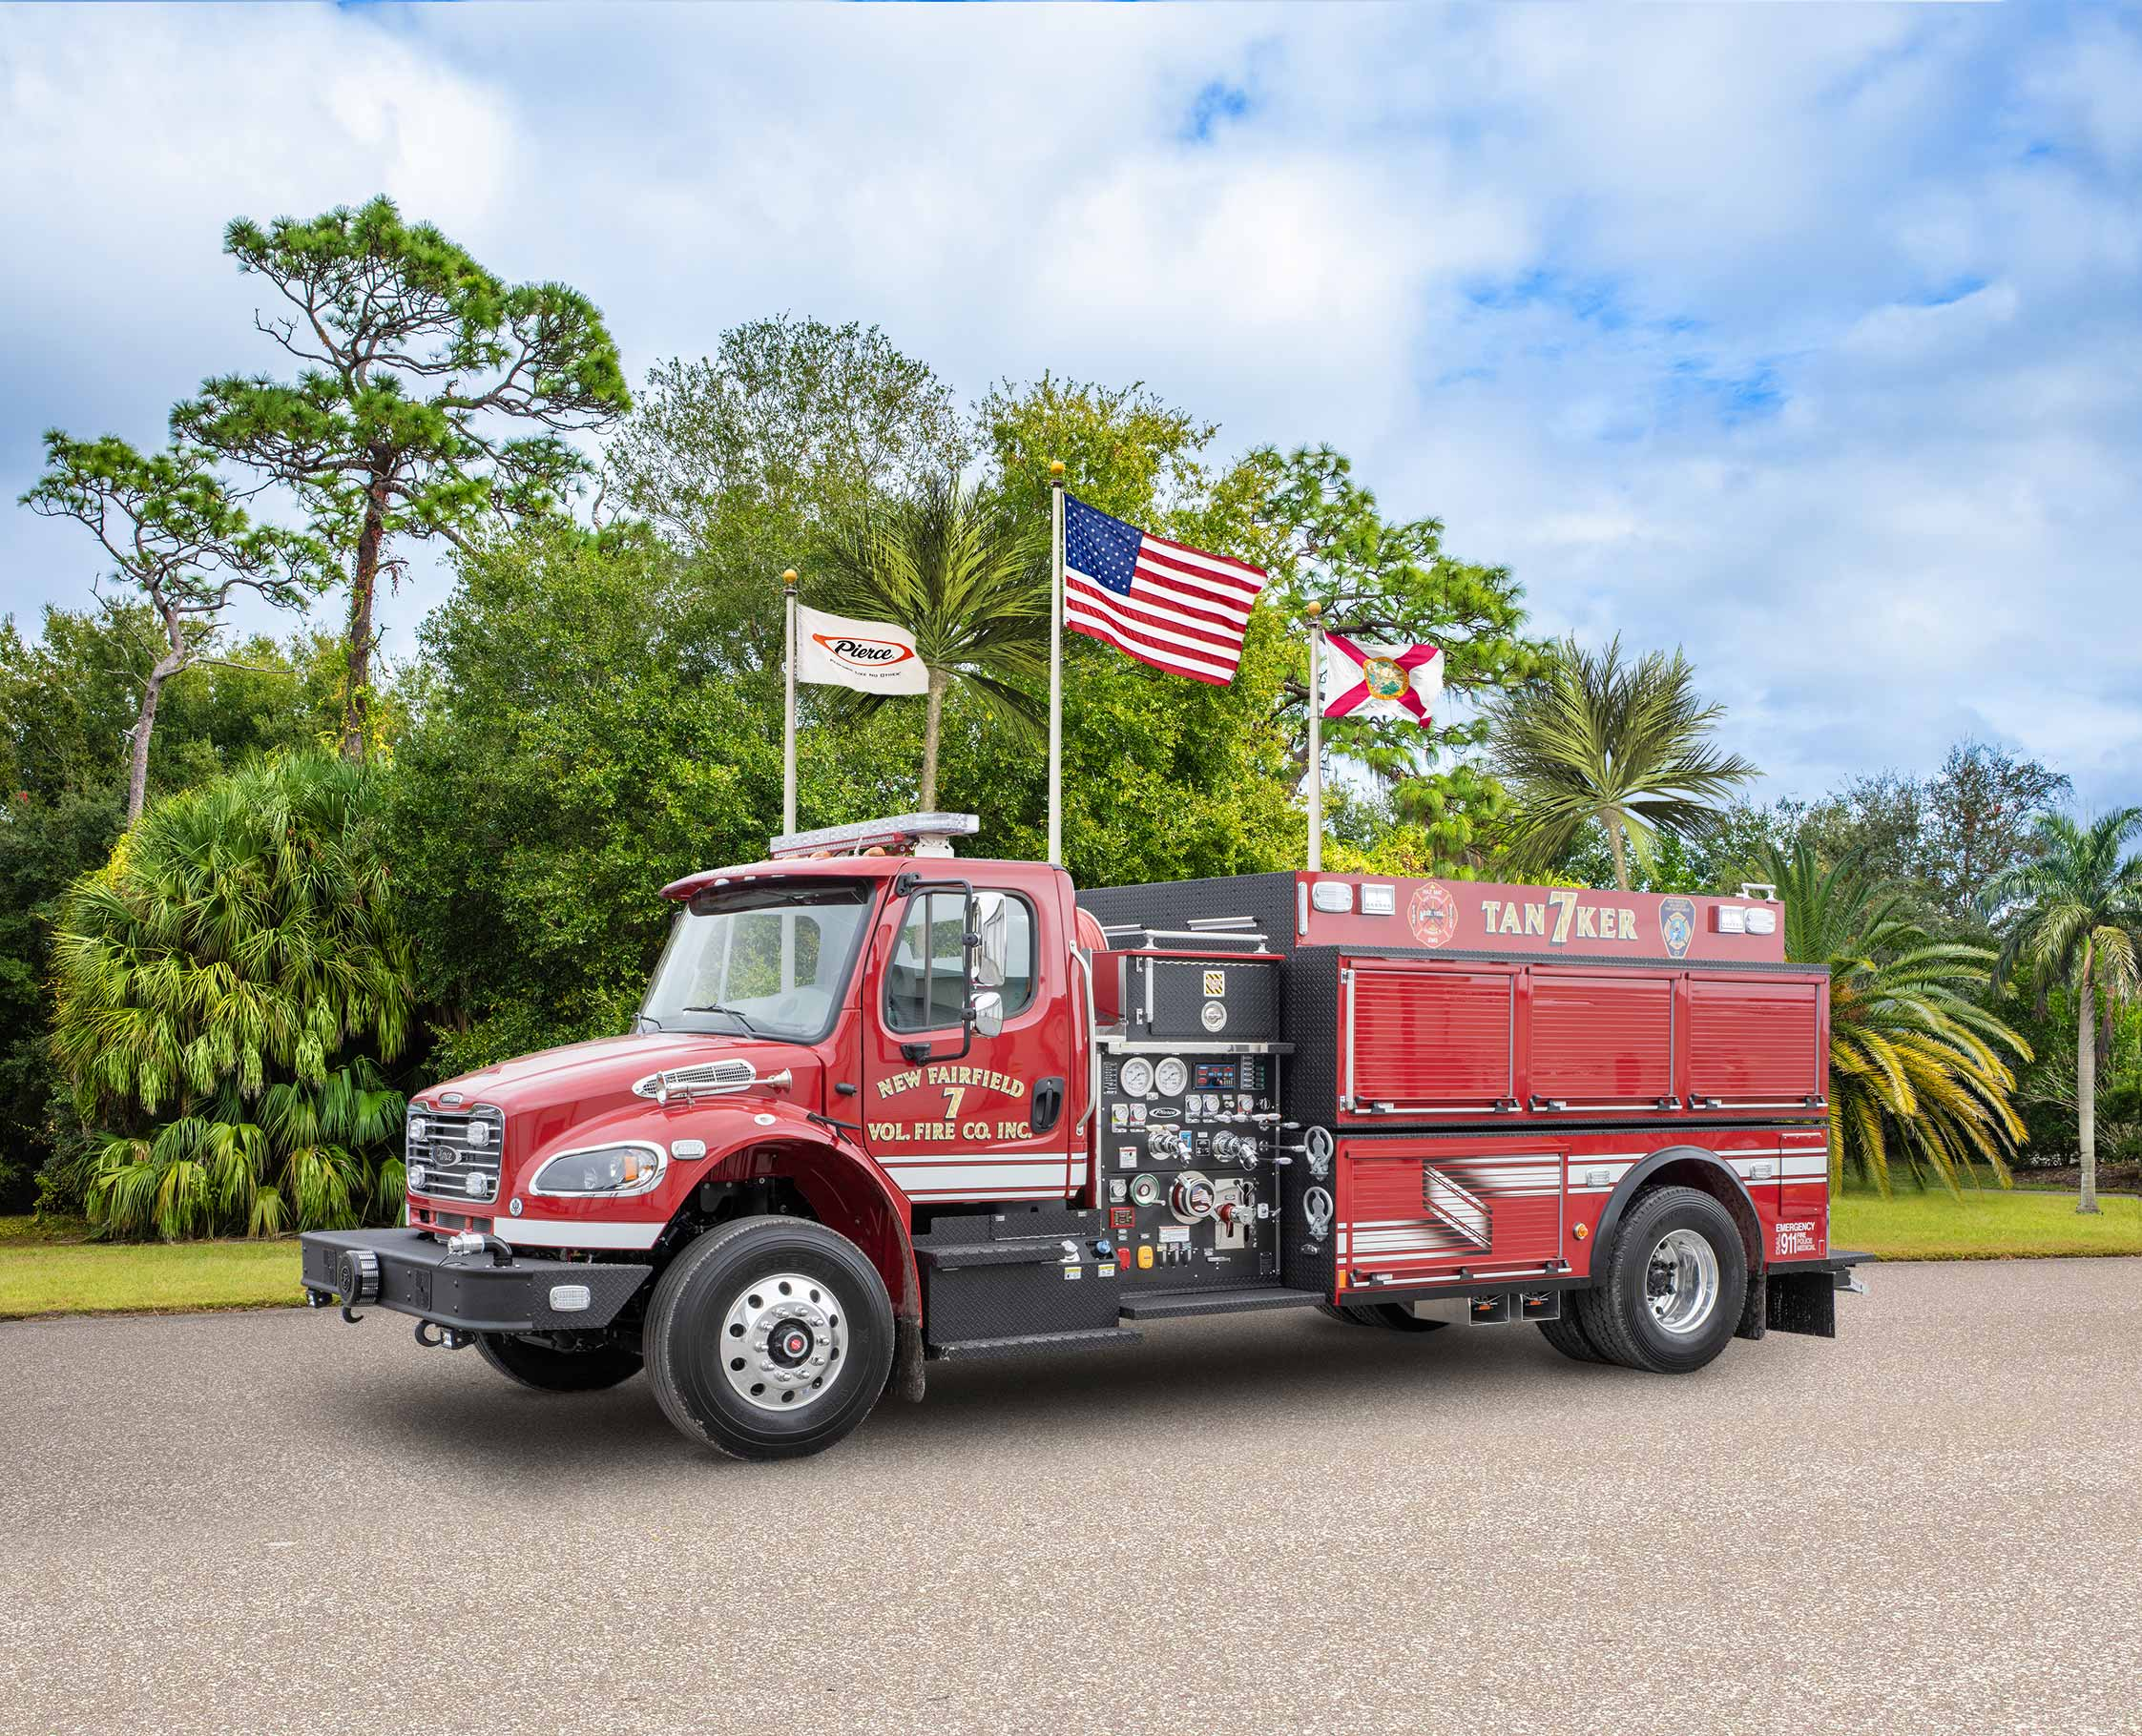 New Fairfield Fire Department Company - Tanker